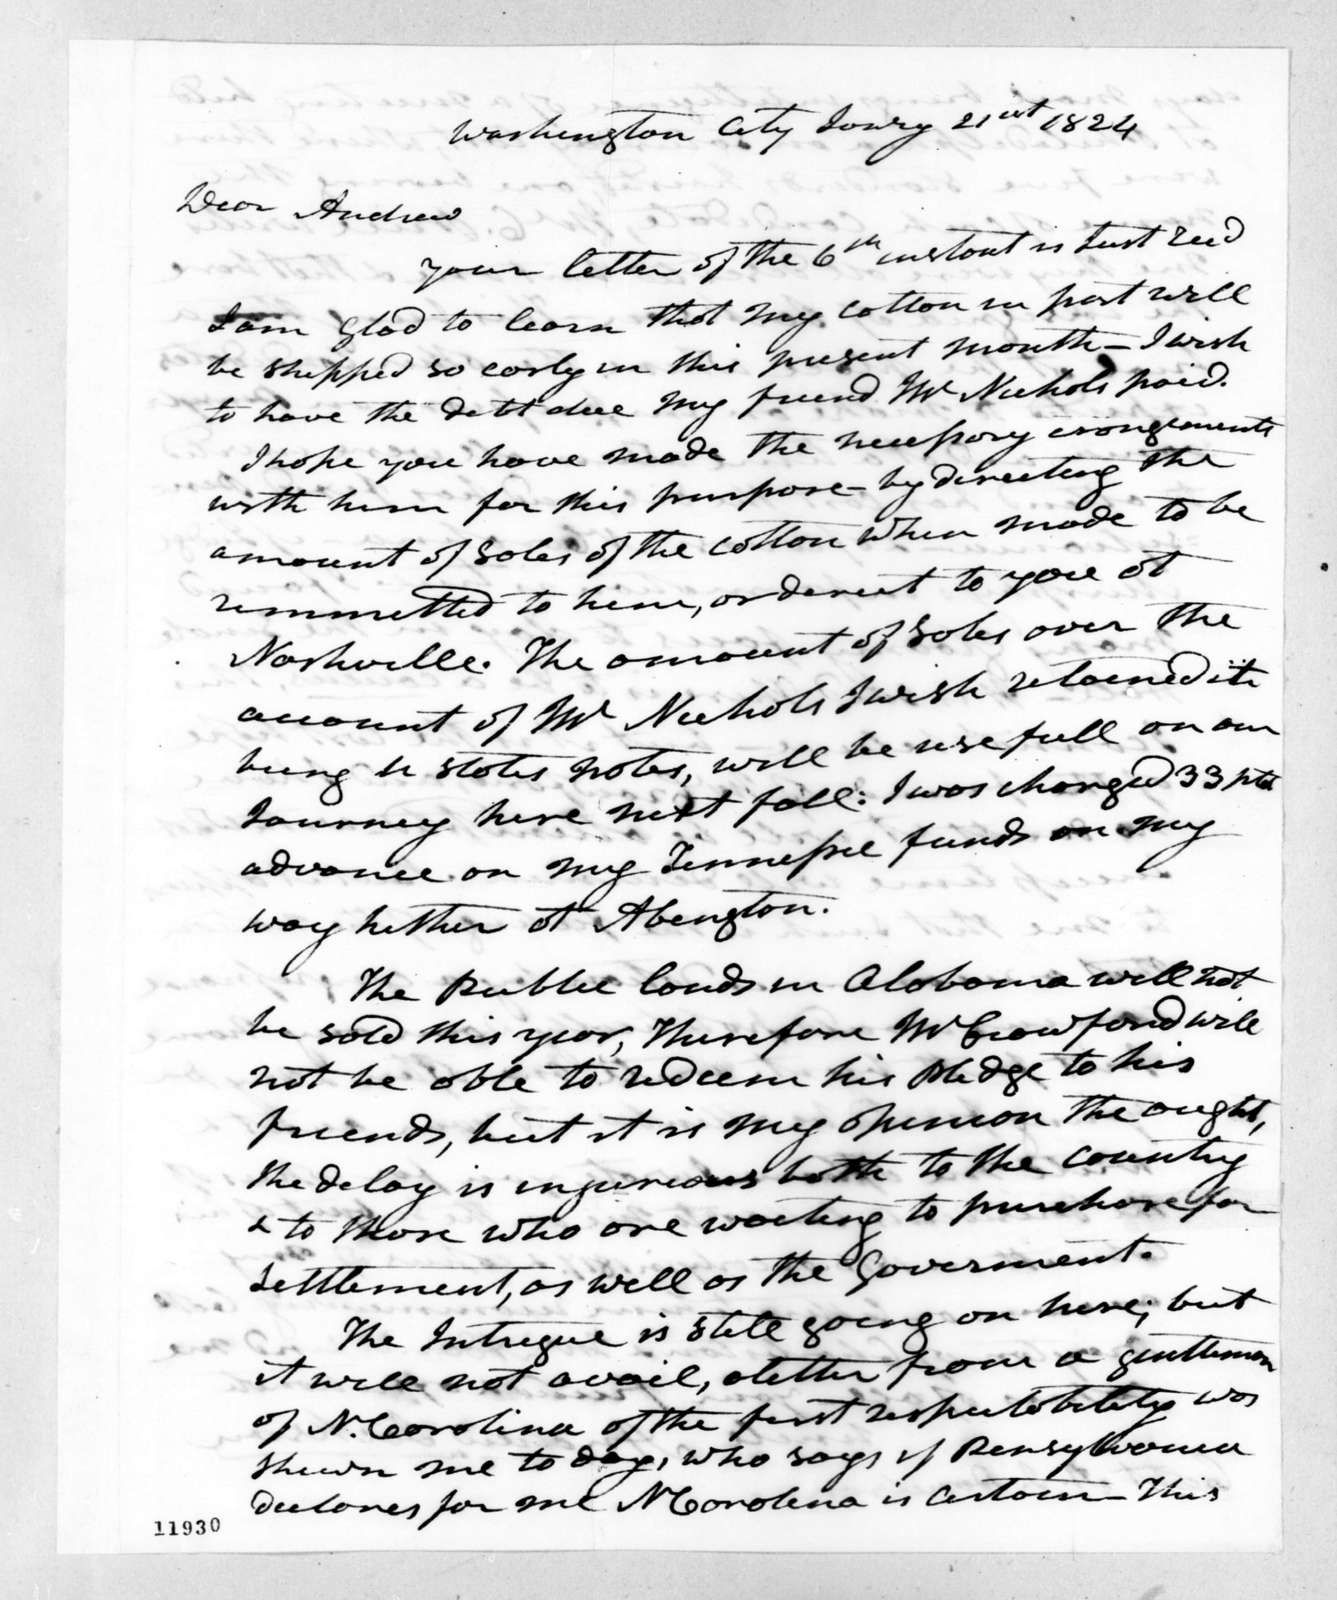 Andrew Jackson to Andrew Jackson Donelson, January 21, 1824